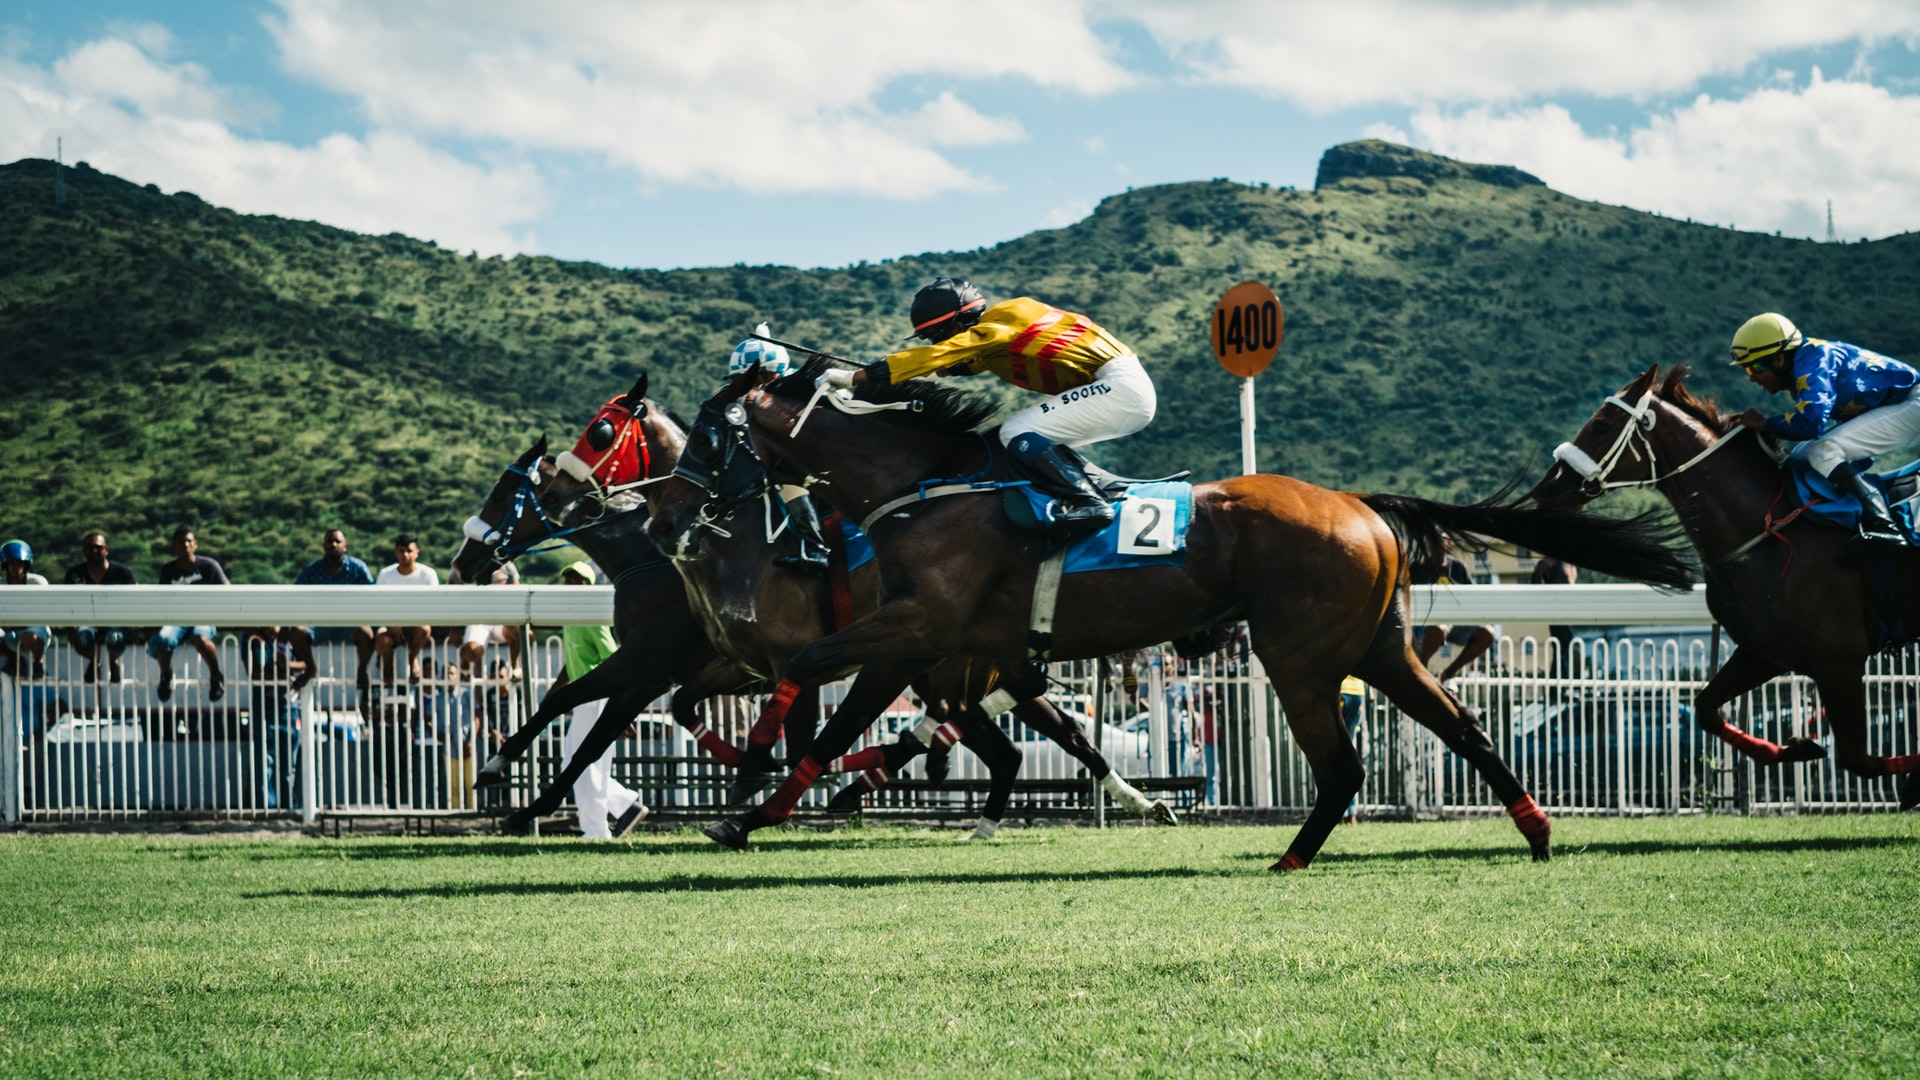 The Biggest Horse Races in the World